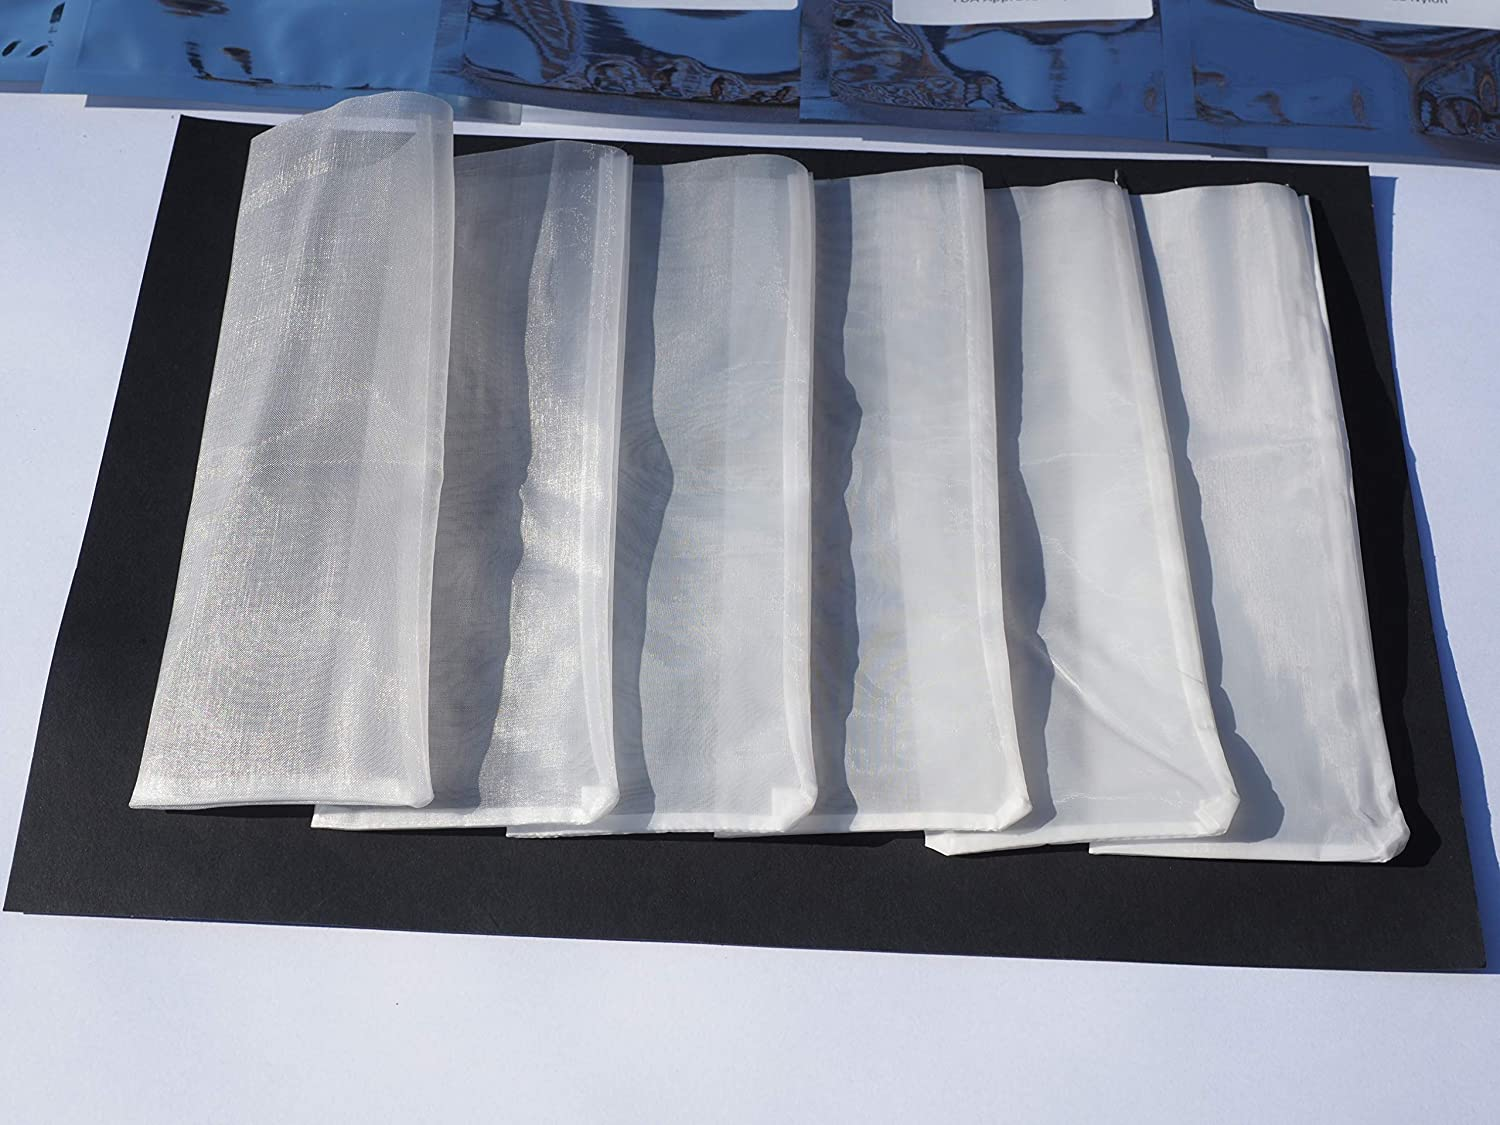 u Filter Bags 2.5 x 7 Rosin Extraction Micron 25 Micron, 10